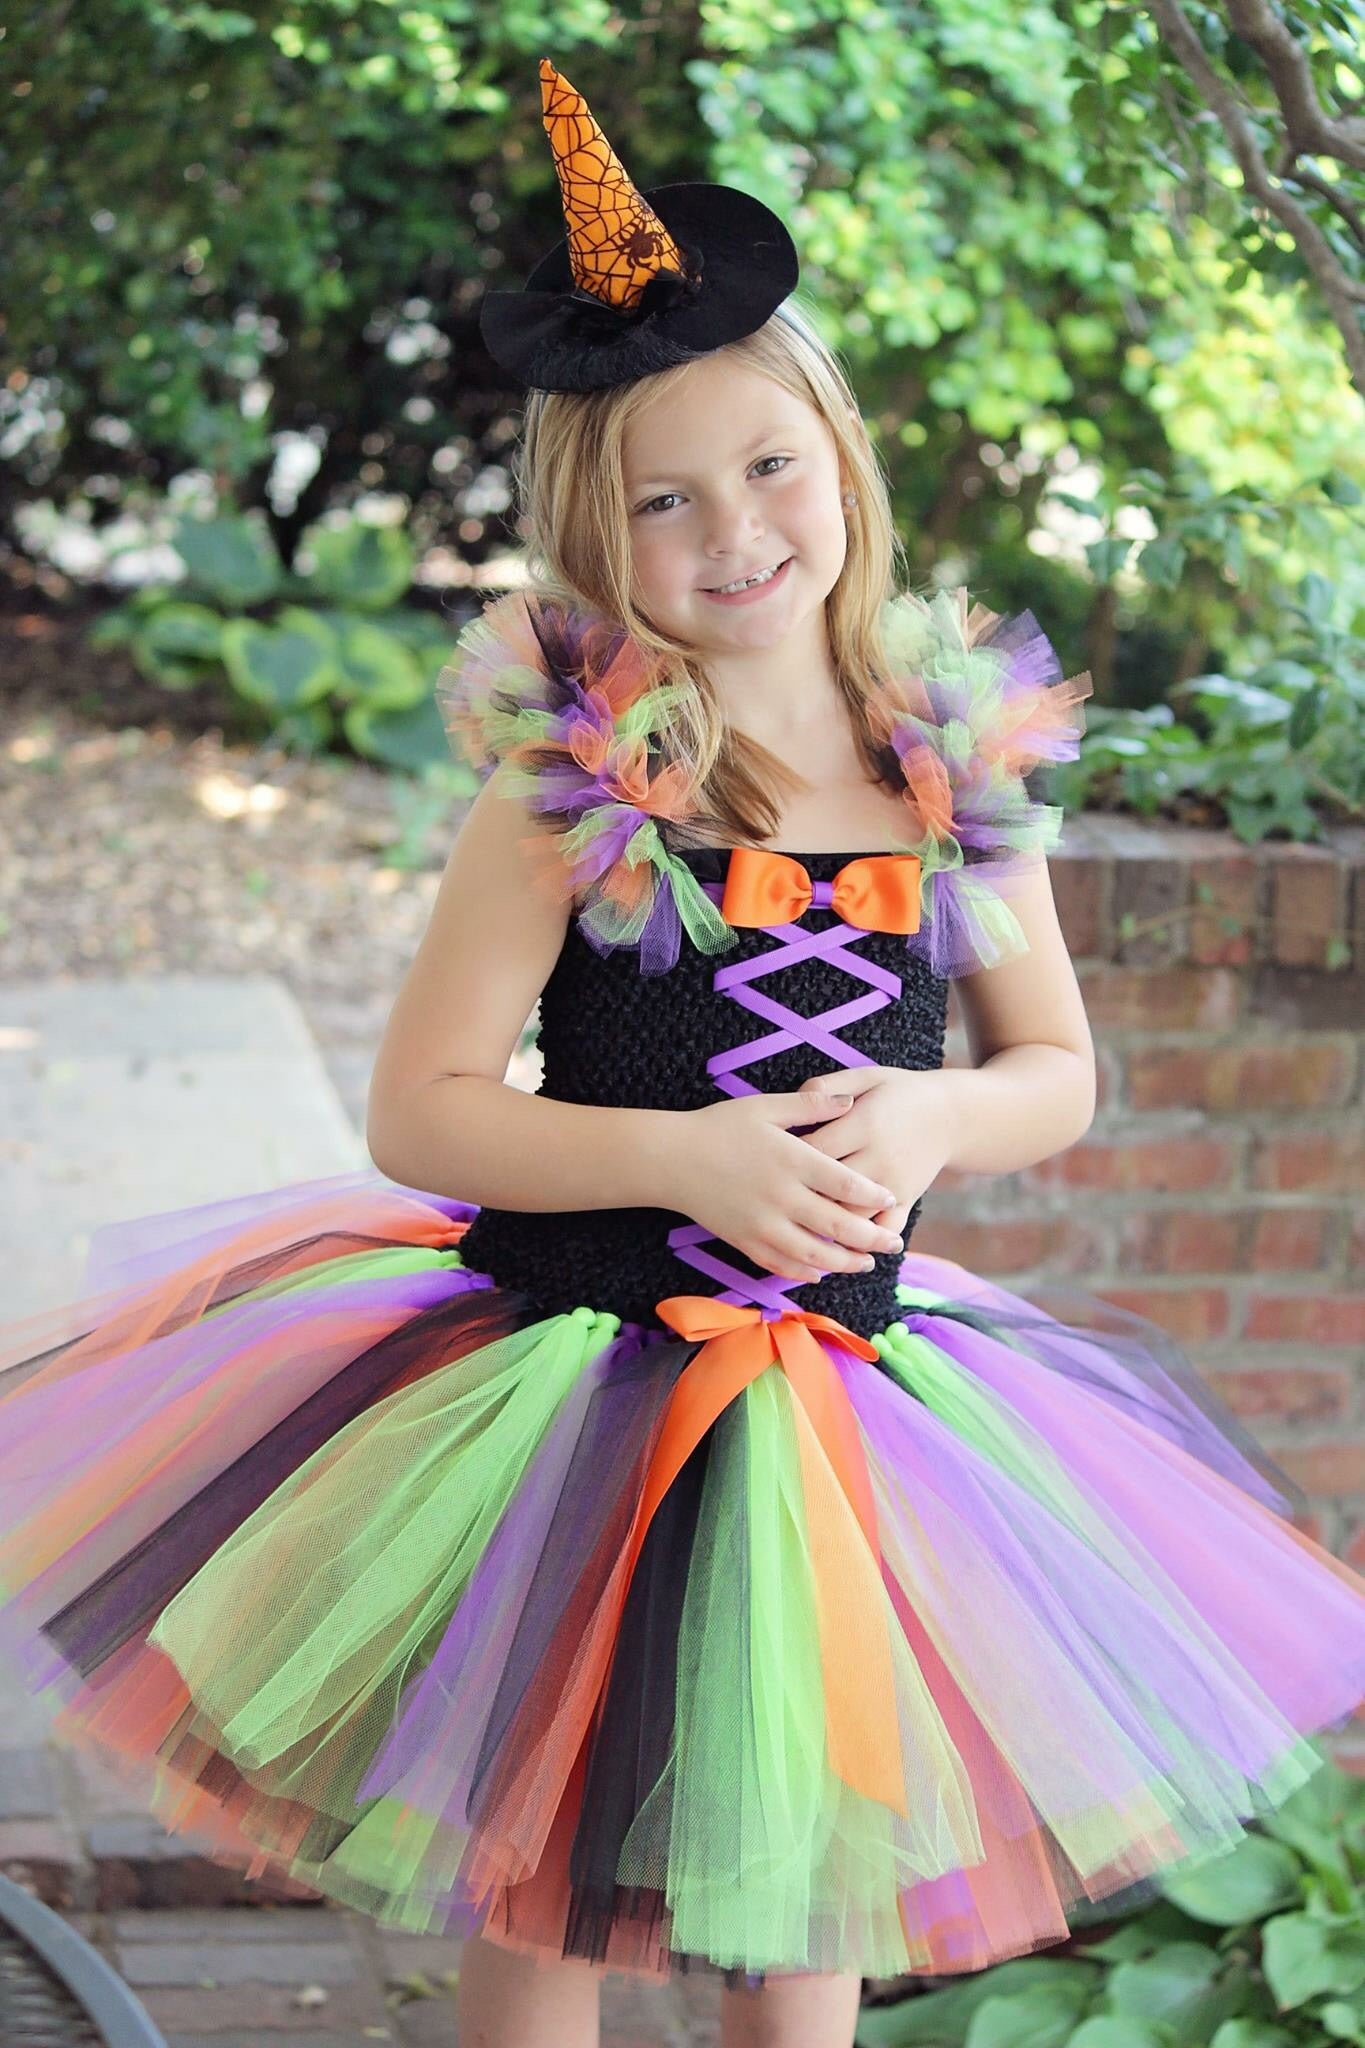 Witch Tutu Girls Witch Dress Witch Costume for Girls Witch Tulle Dress  sc 1 st  Little Ladybug Tutus & Witch Tutu Girls Witch Dress Witch Costume for Girls Witch Tulle ...